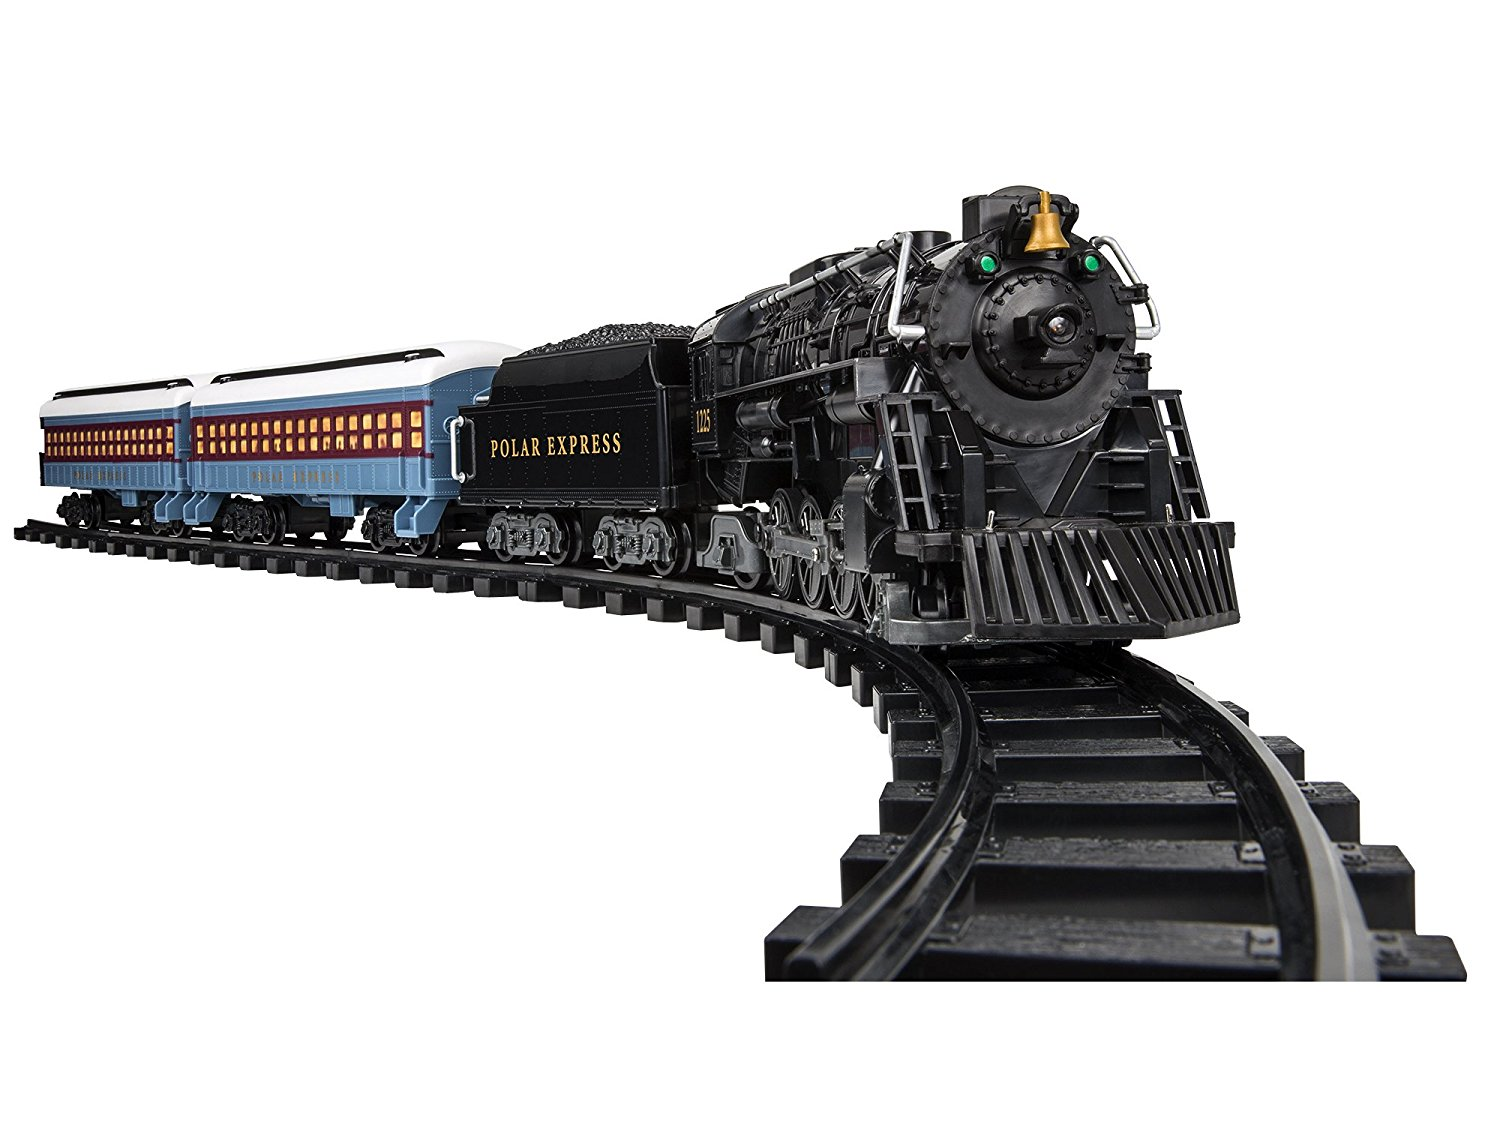 Lionel Polar Express Ready To Play Train Set Review